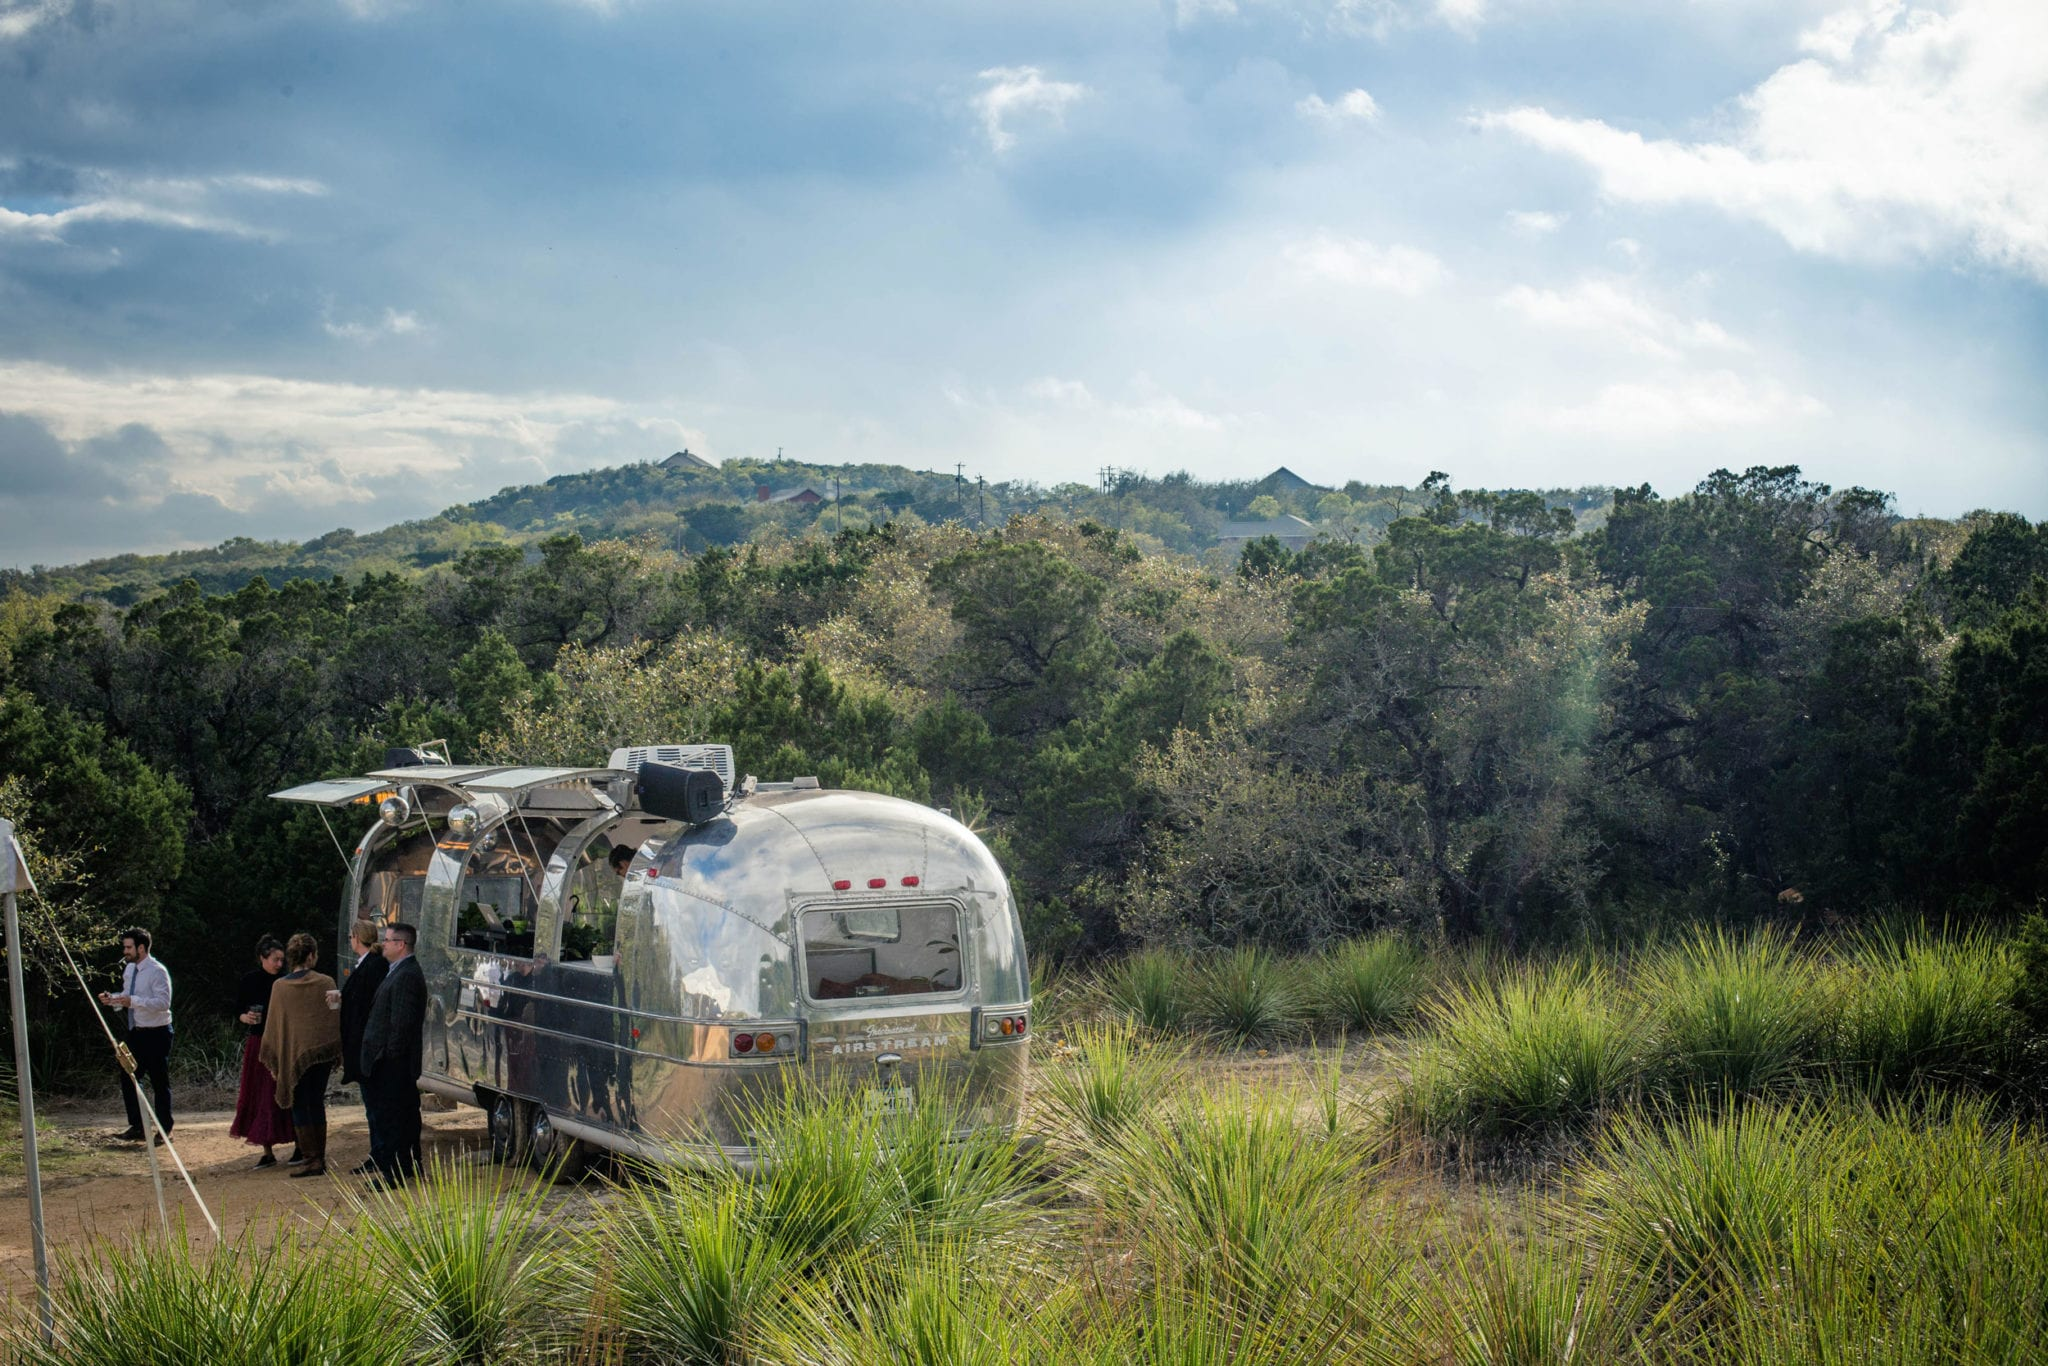 Who are the founders of Sound Cream Airstream?